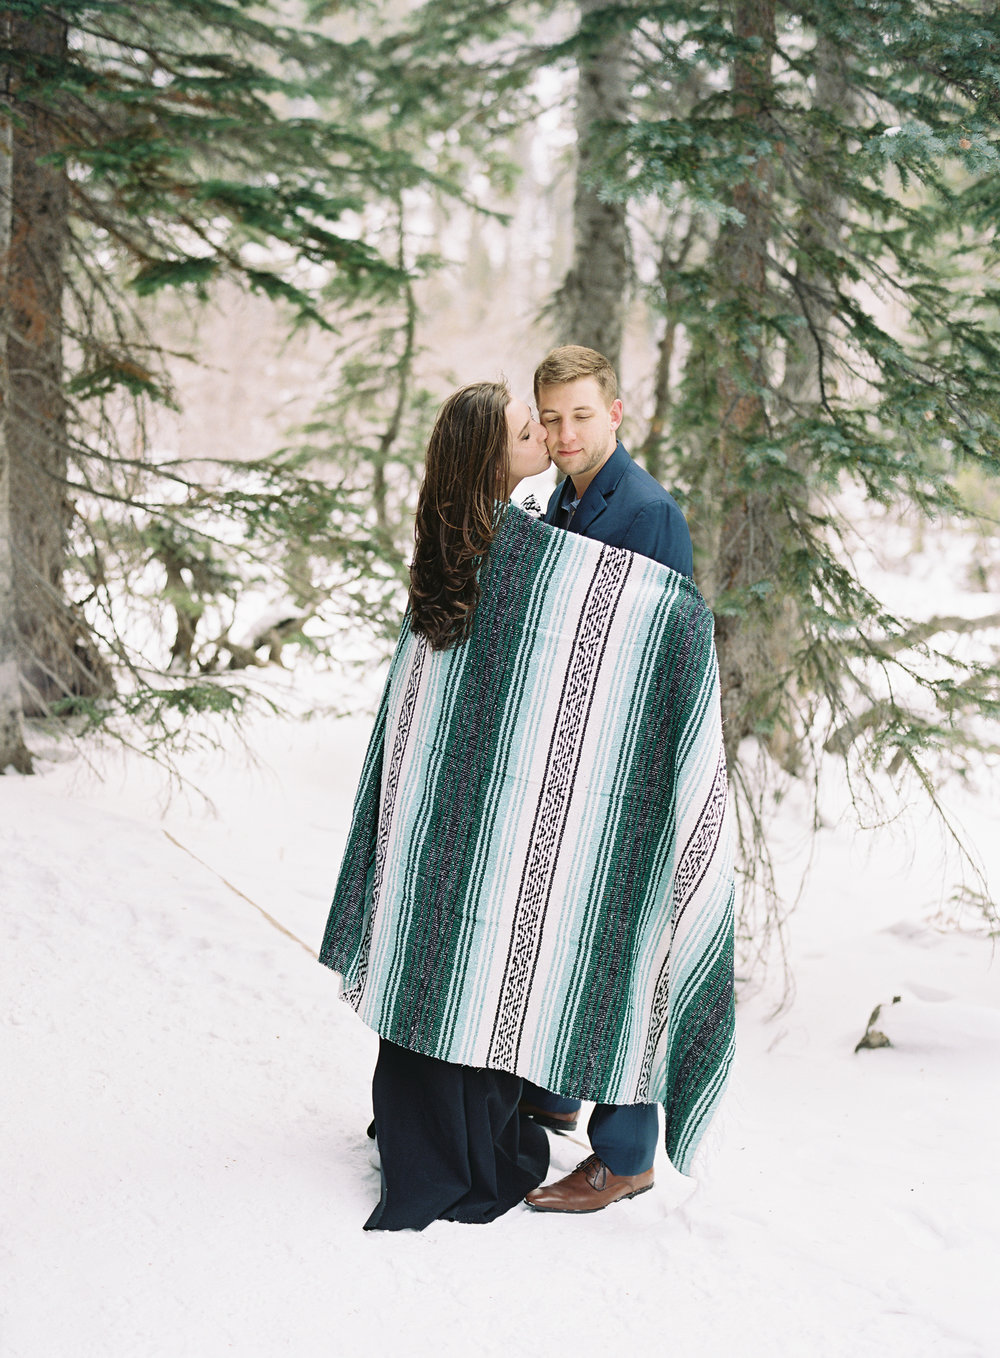 PAULA + DAVID - ROCKY MOUNTAIN NATIONAL PARK, COLORADO